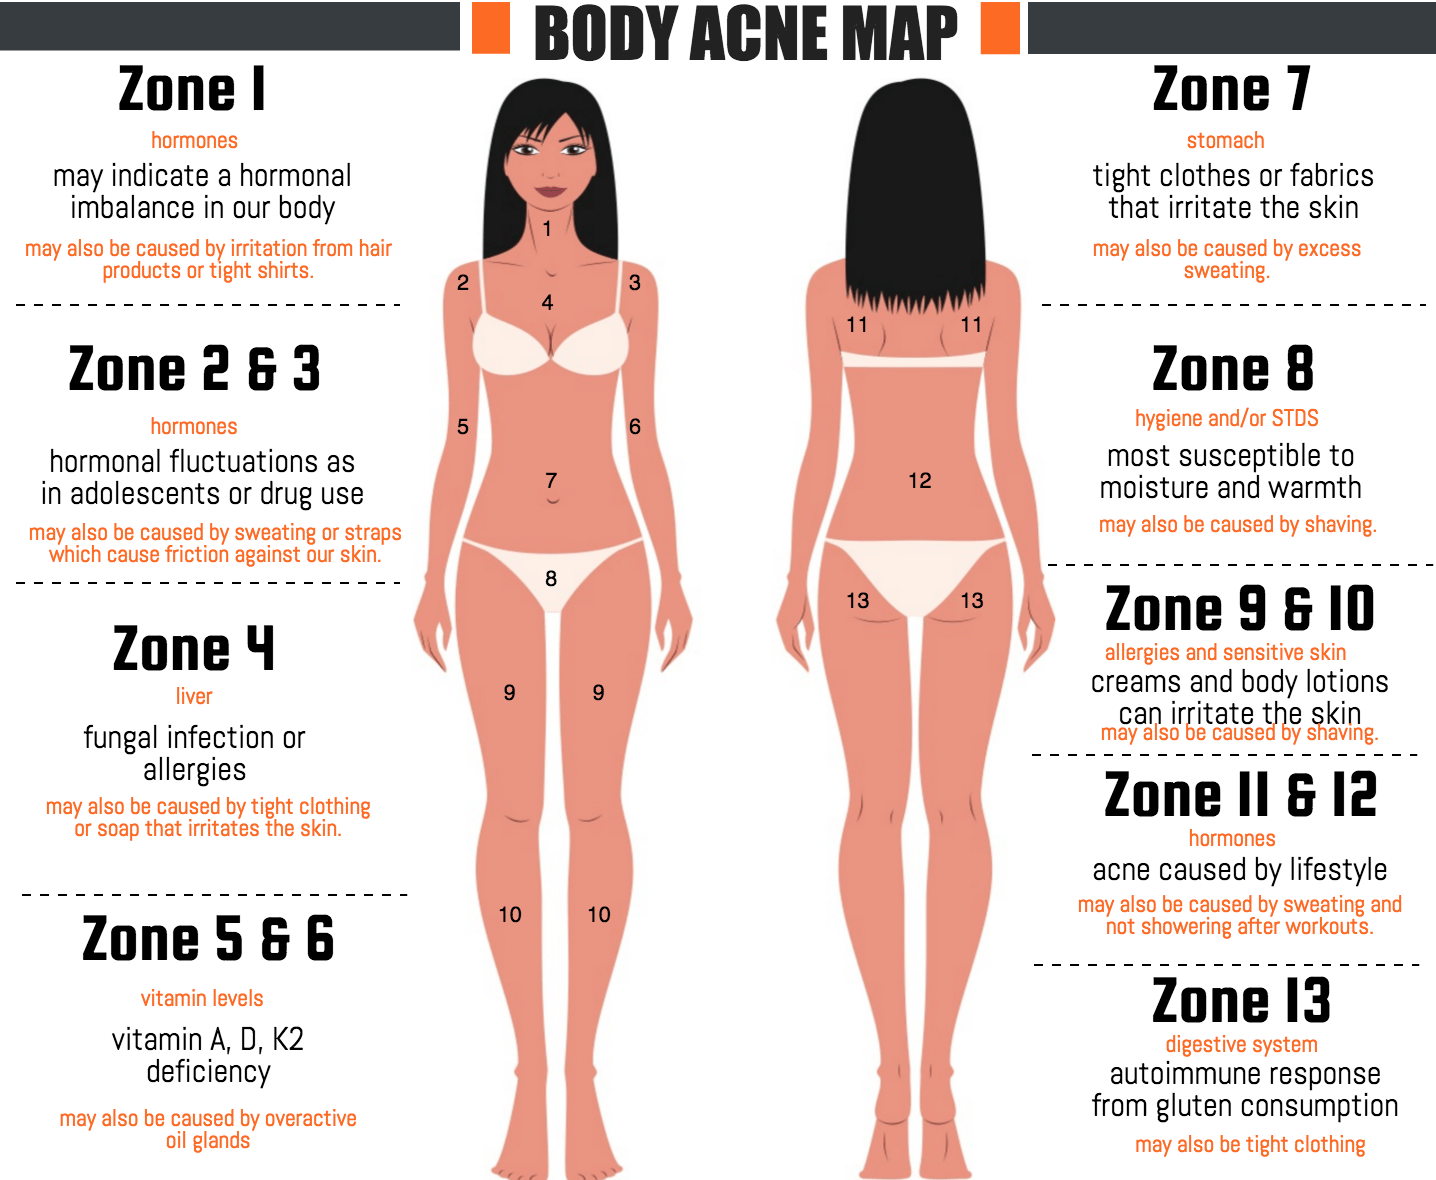 hight resolution of just as we use an acne face map for figuring out what issues are giving us breakouts on our face we can use body mapping to figure out what issues are